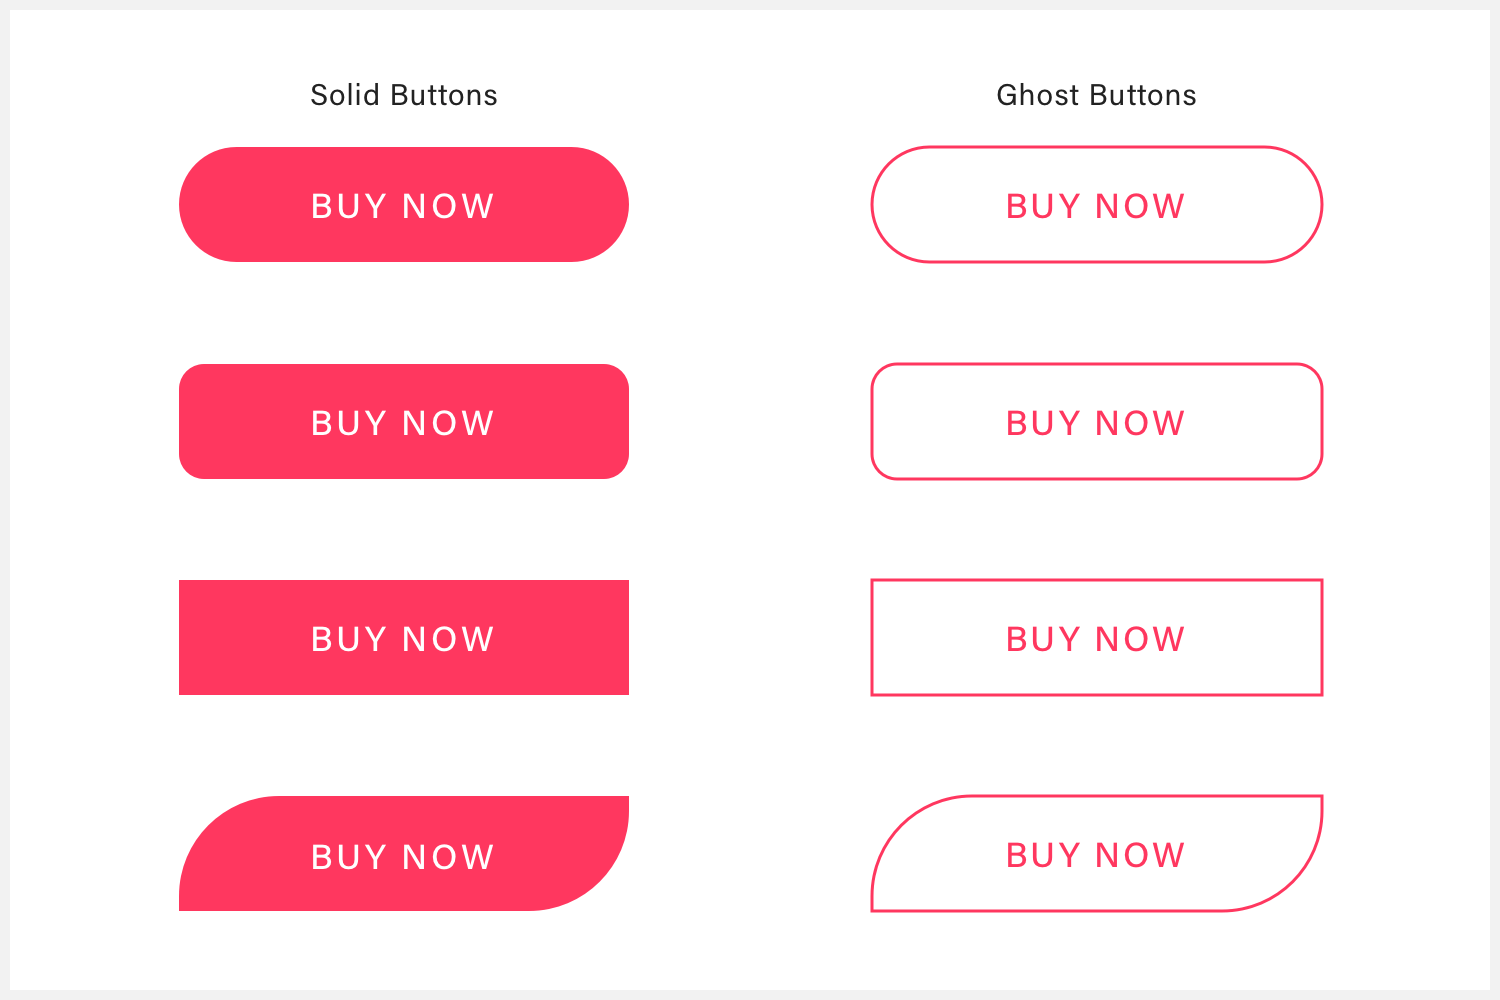 Several solid and ghost buttons that illustrate a call to action.